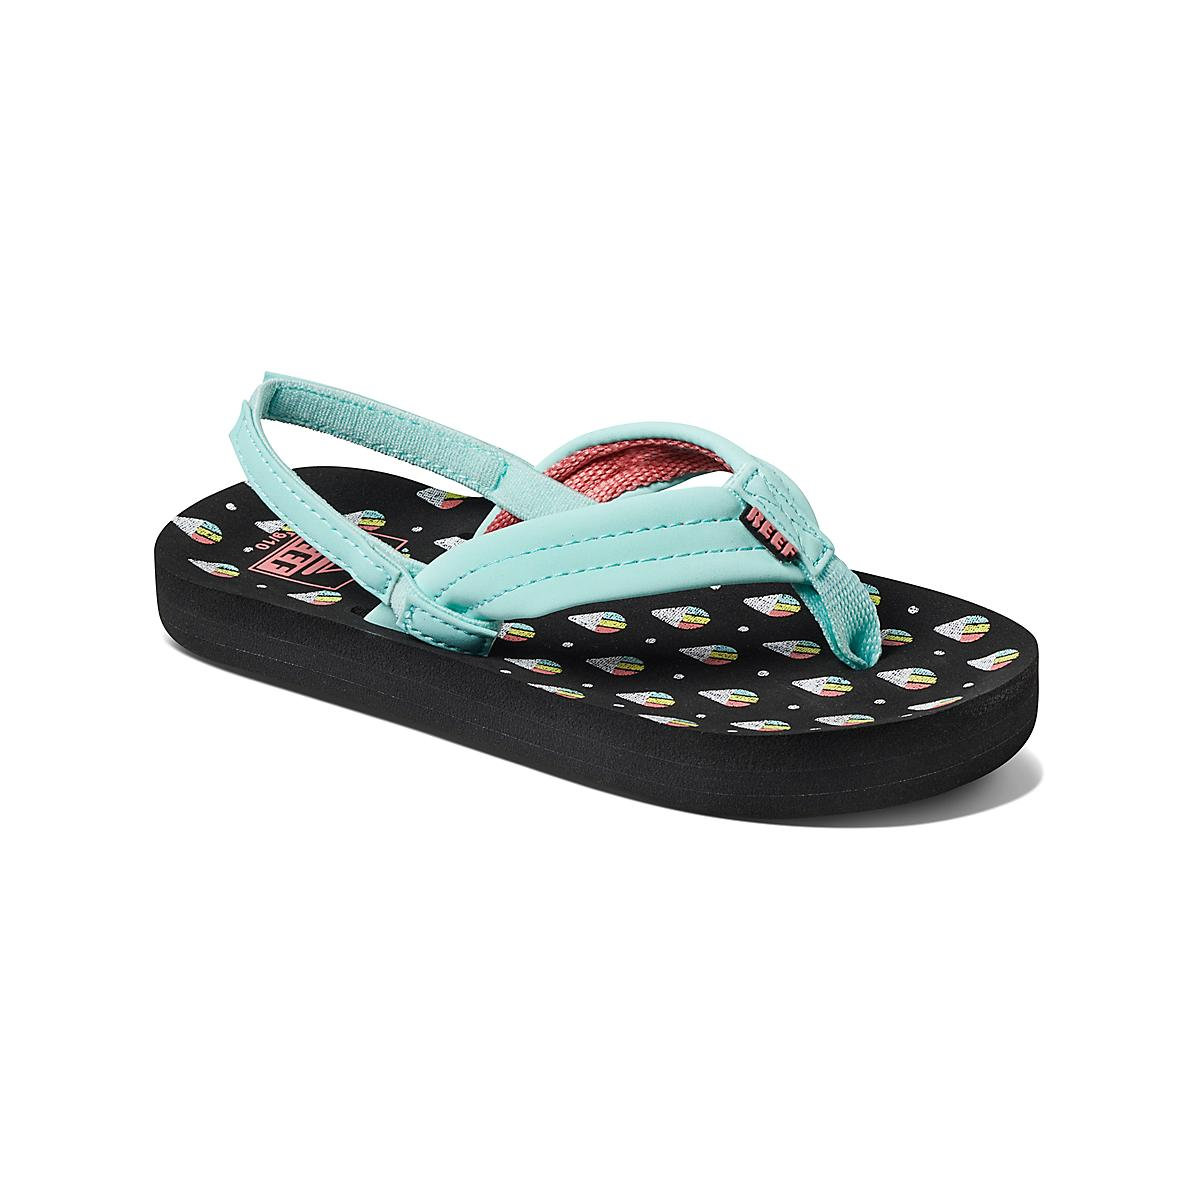 aee1948a61a1 Kids Reef Little Ahi Sandals Shoe